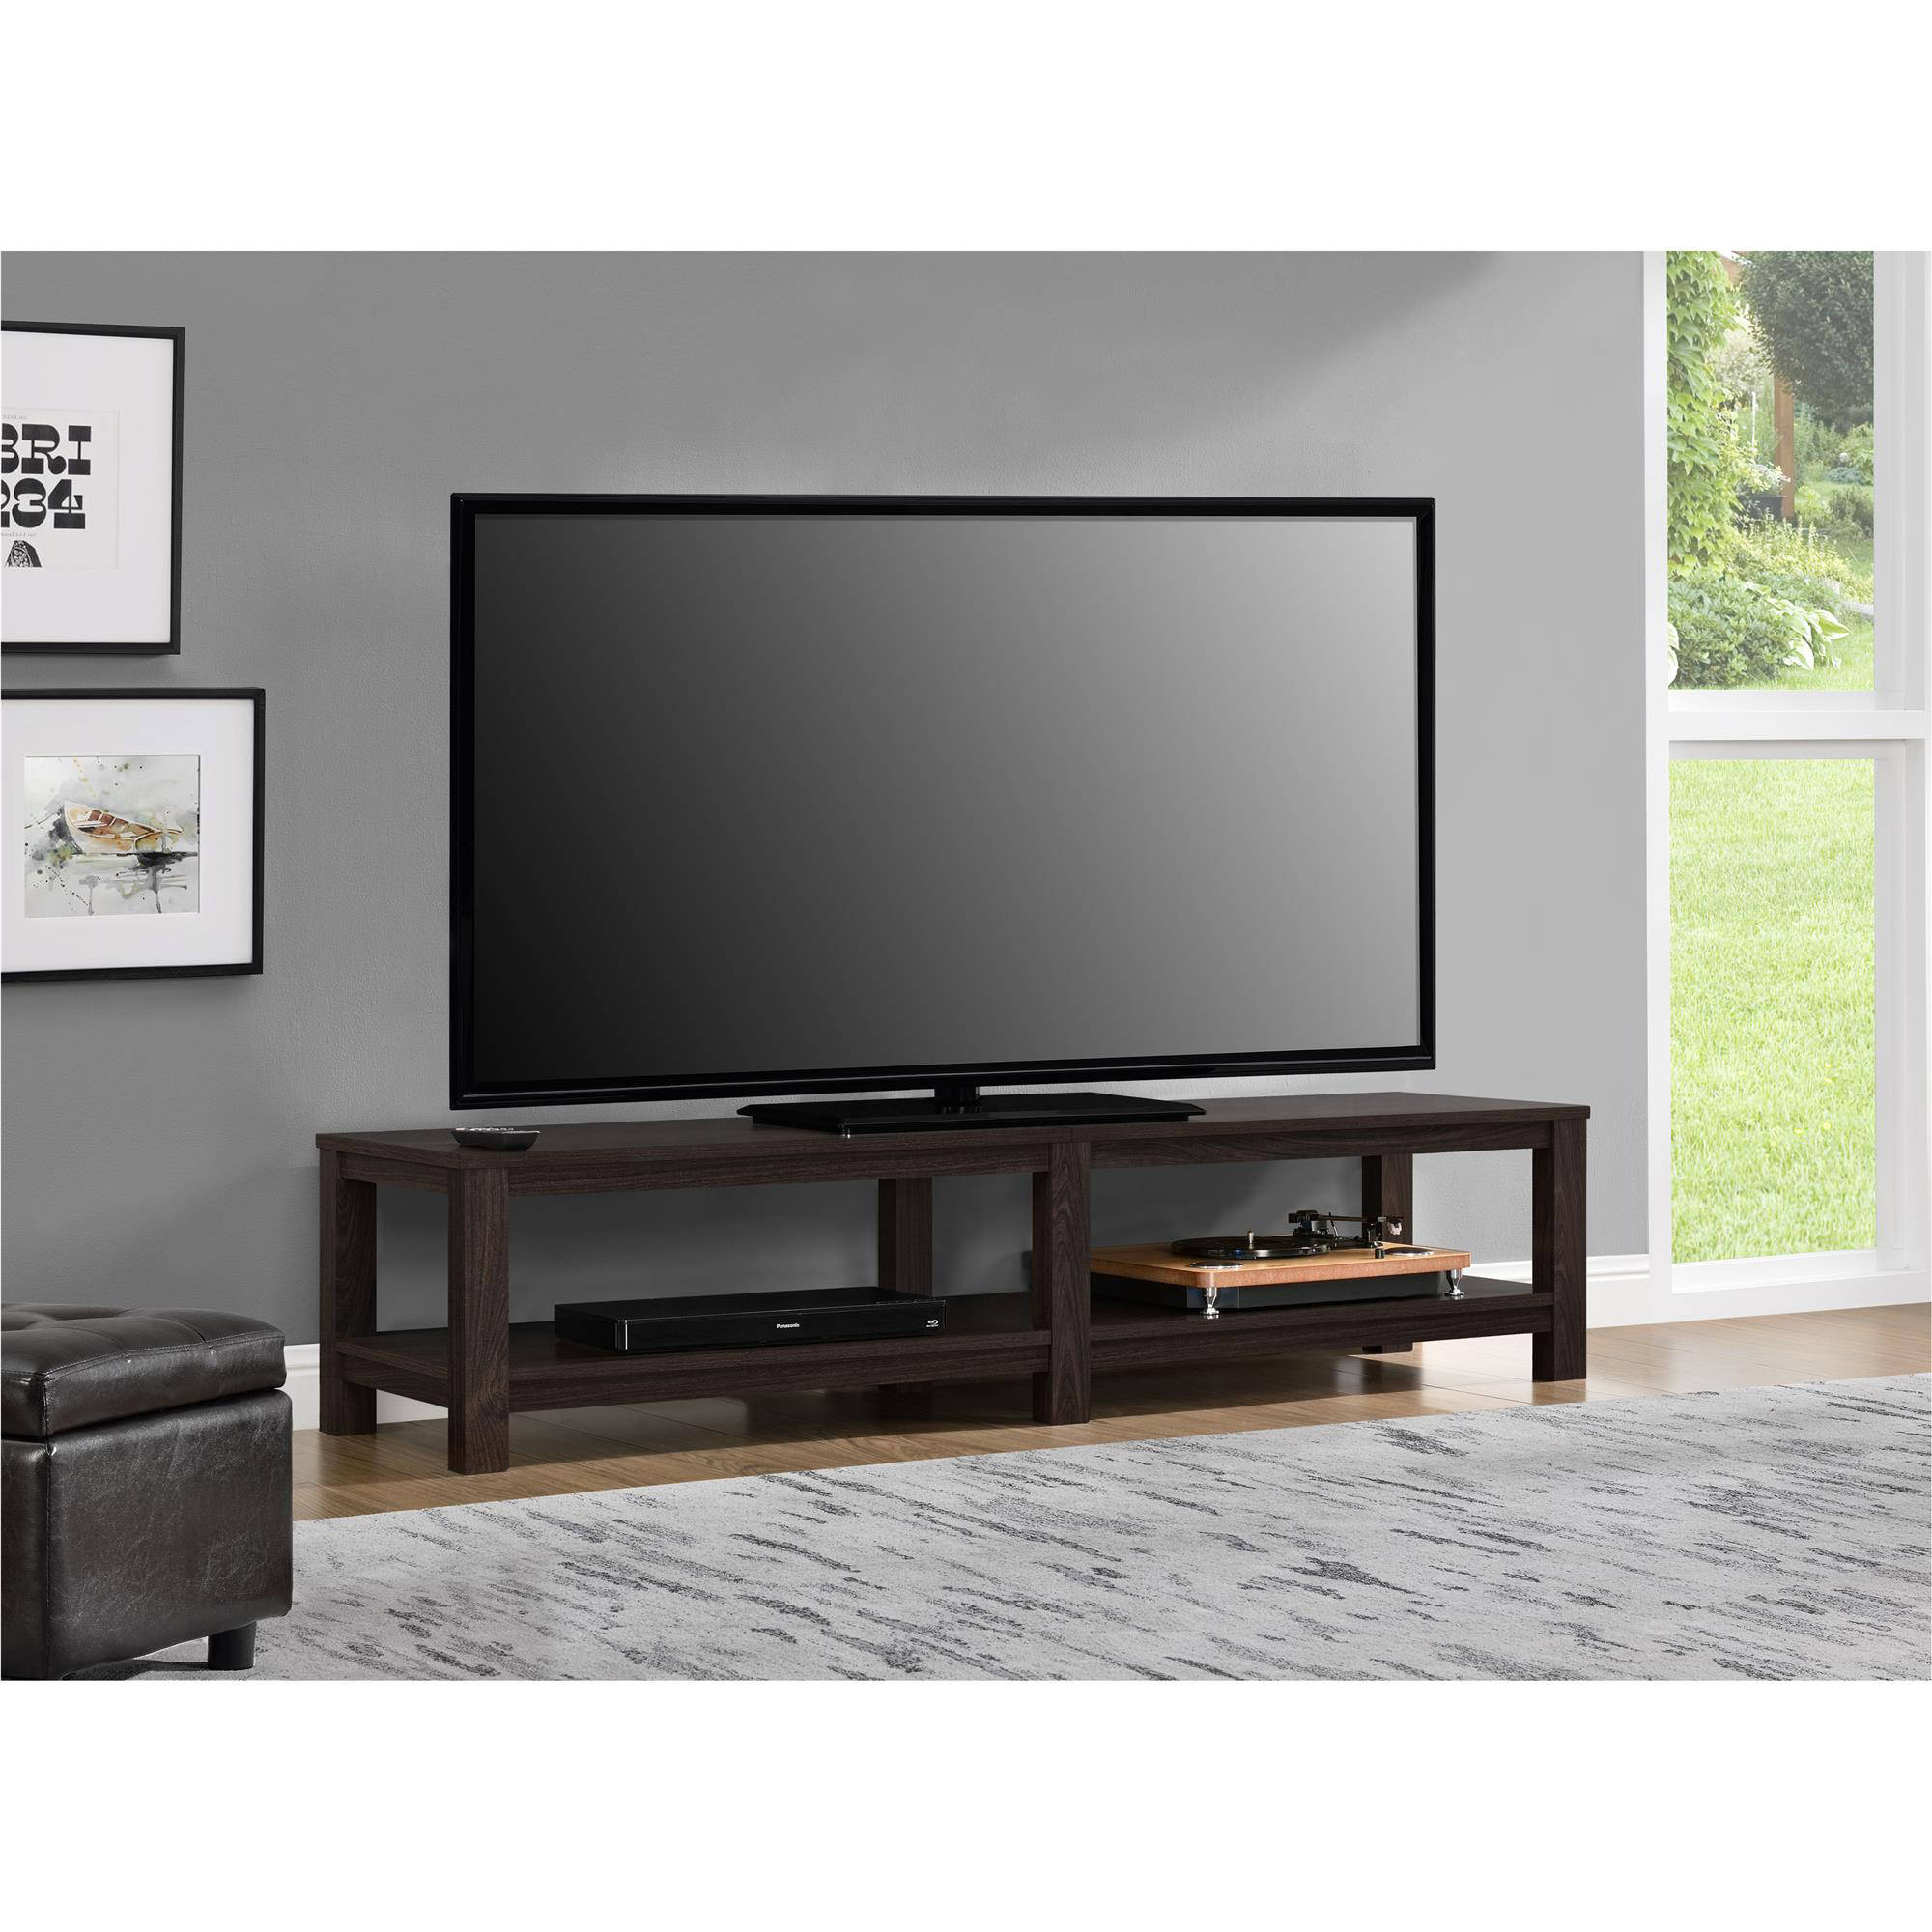 """Mainstays Parsons Tv Stand For Tvs Up To 65"""", Multiple Colors Regarding Century Blue 60 Inch Tv Stands (View 5 of 30)"""